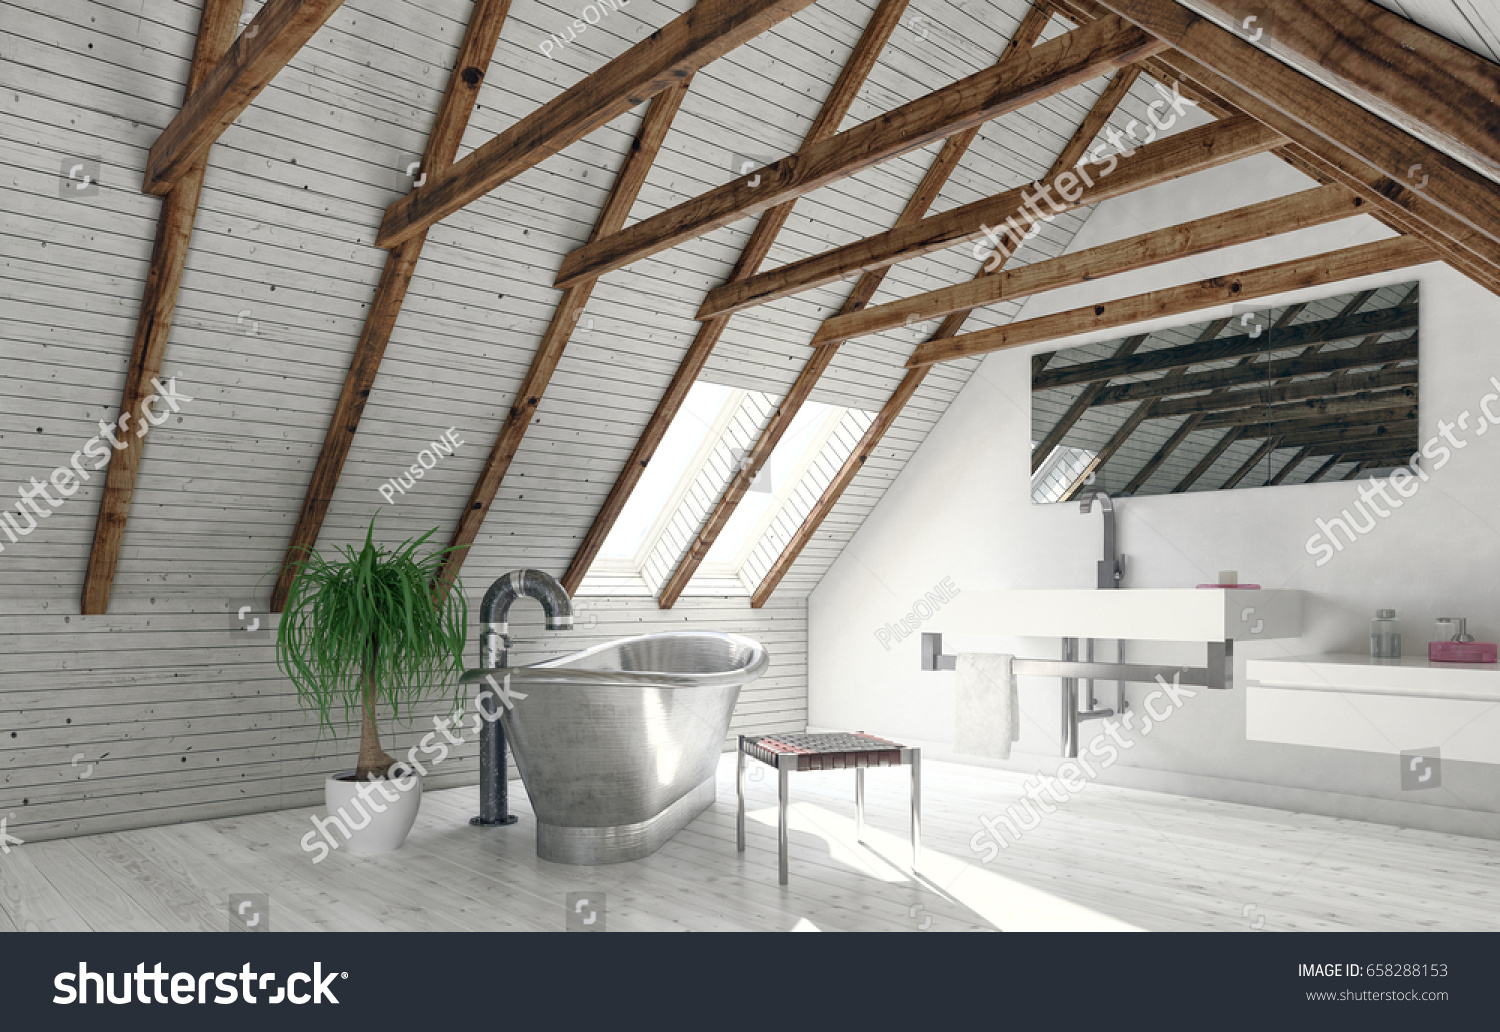 Concept Attic Bathroom White Walls Roof Stock Illustration 658288153 ...